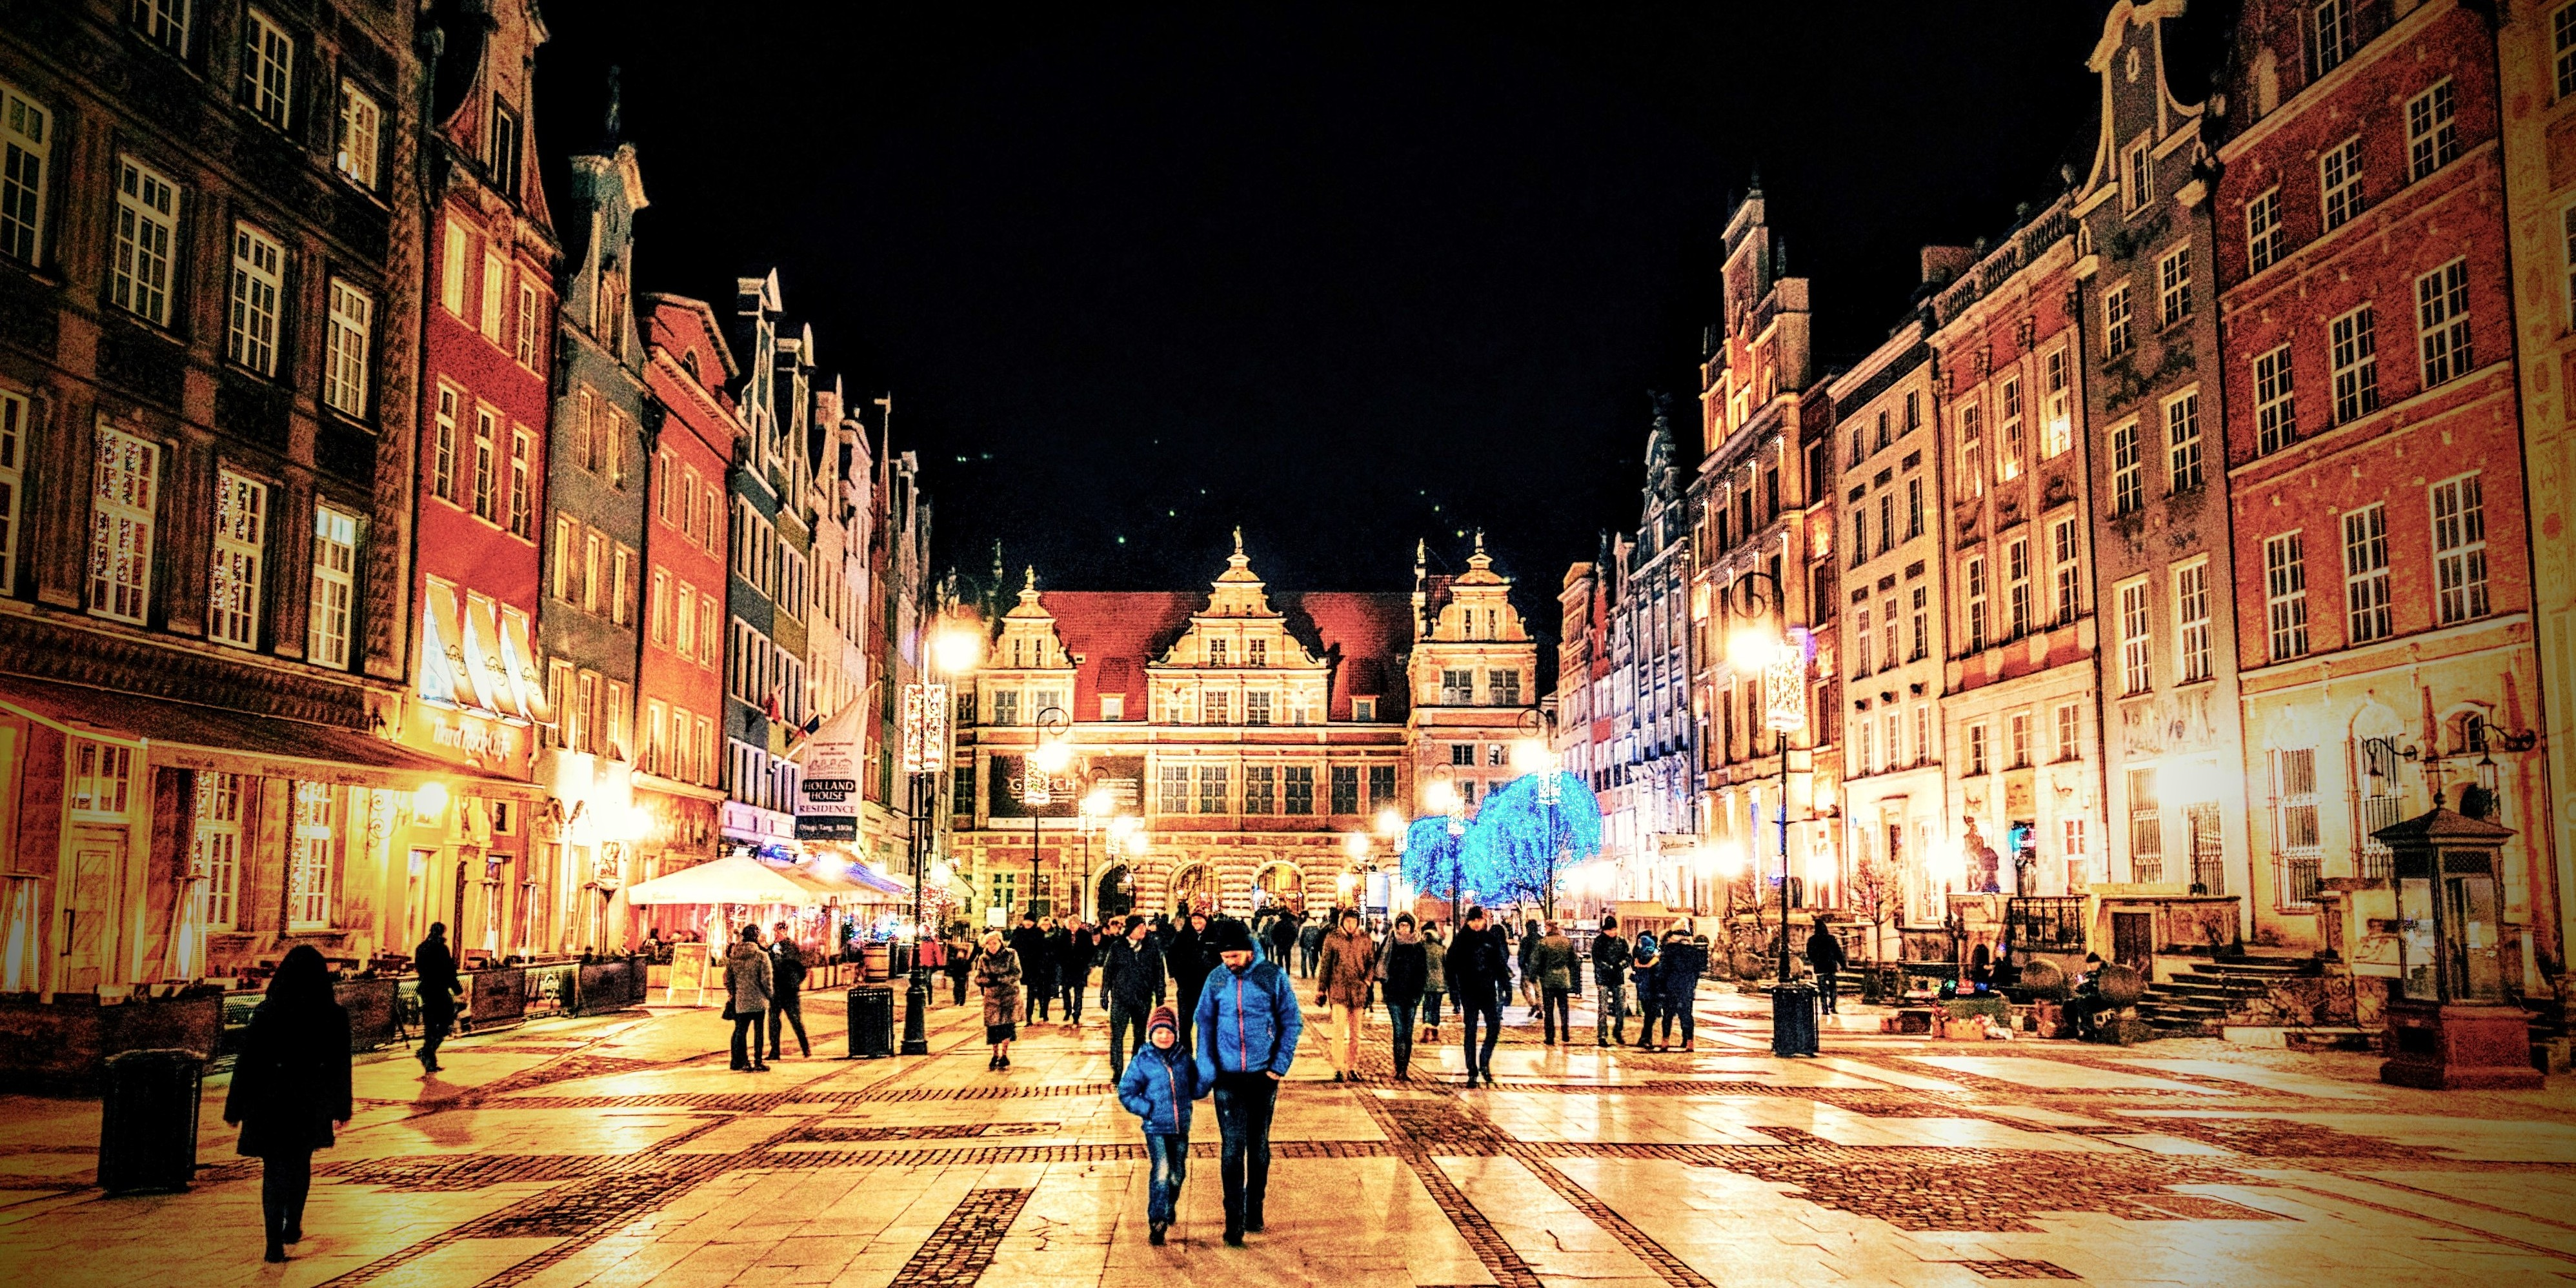 The Gdansk Green Gate at New Year's Eve